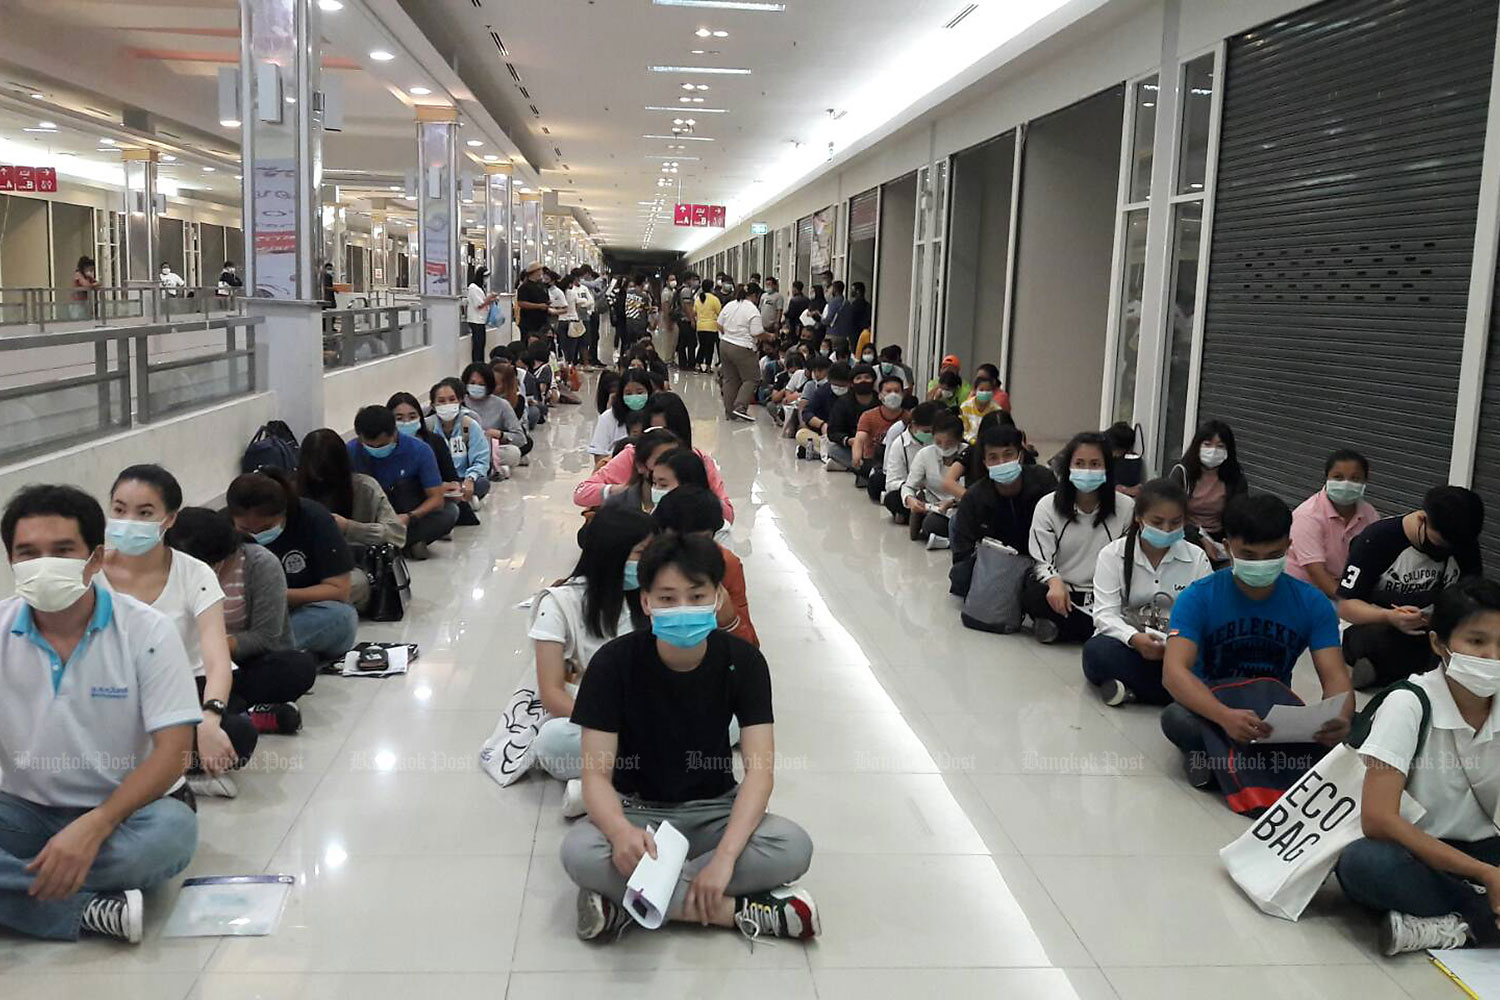 Job aspirants turn up at the Hub Rangsit in Pathum Thani on Oct 28 to apply to take a standardised Korean language test required for foreign workers seeking jobs in South Korea under the Employment Permit System of the government-to-government labour export quota. (Photo by Penchan Charoensuthipan)